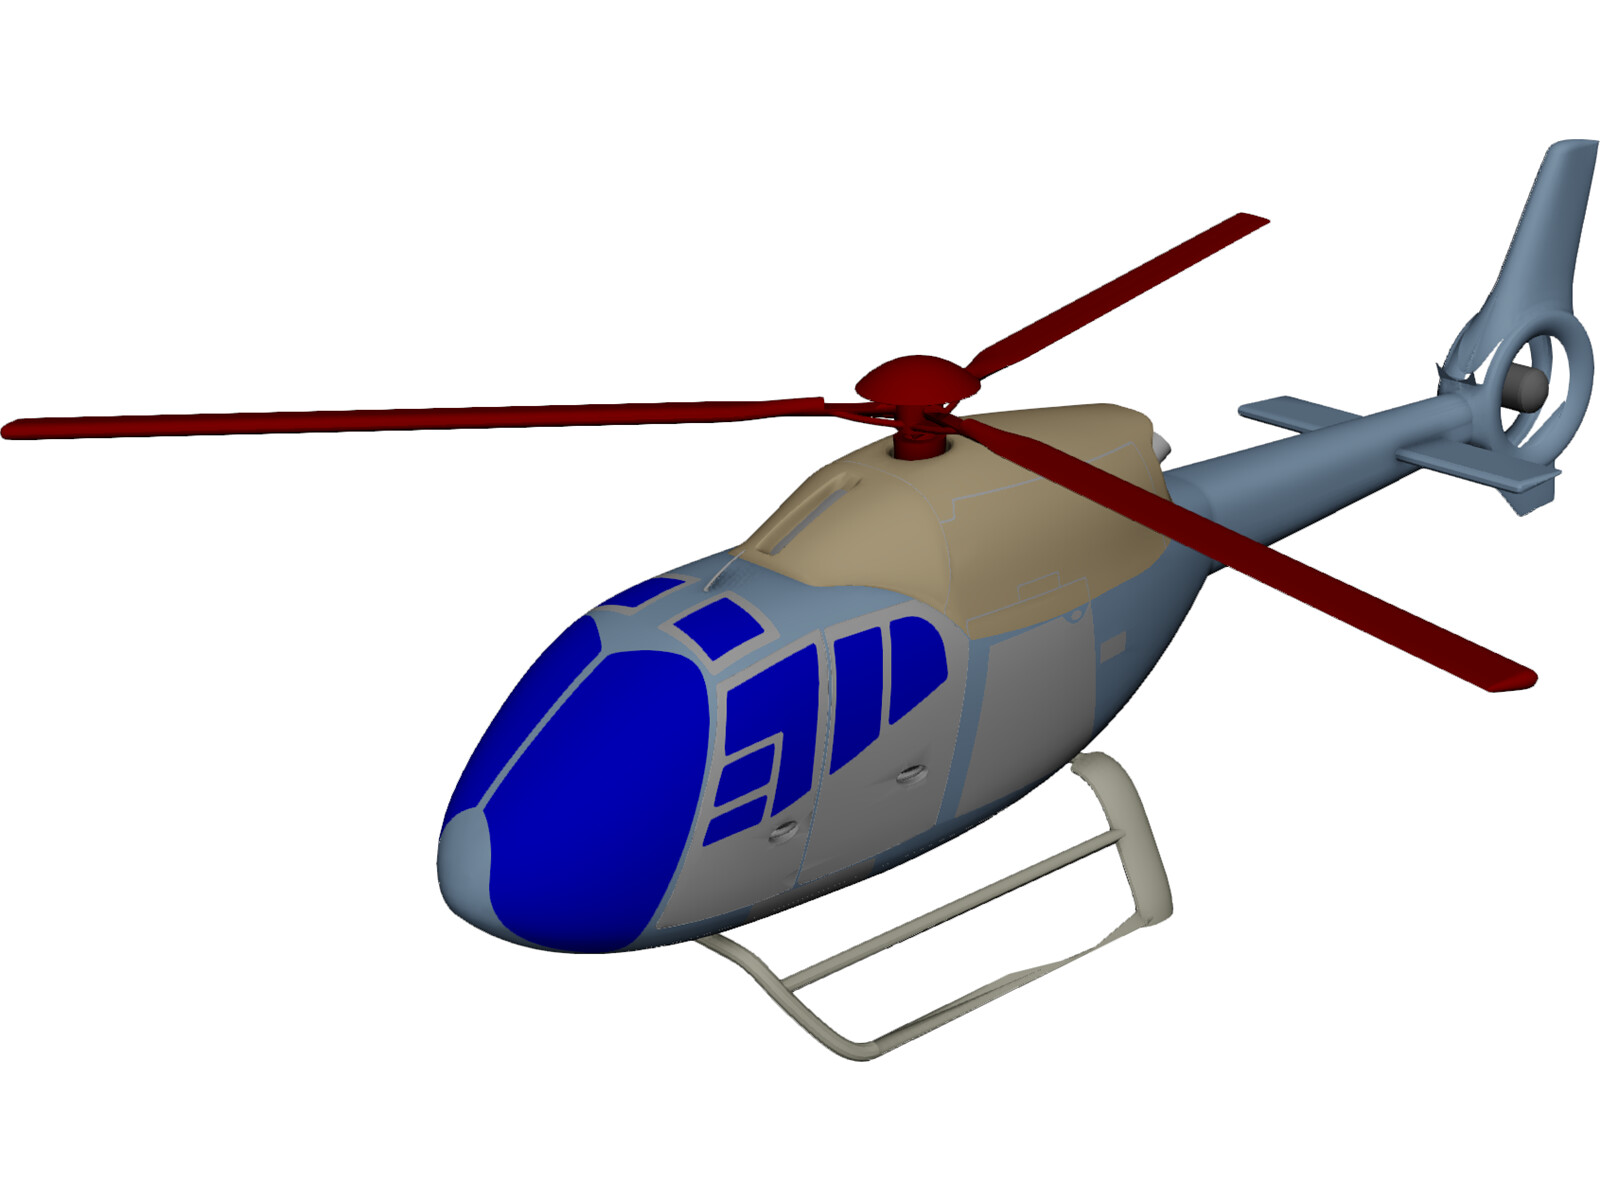 Eurocopter EC-120 Colibri 3D CAD Model